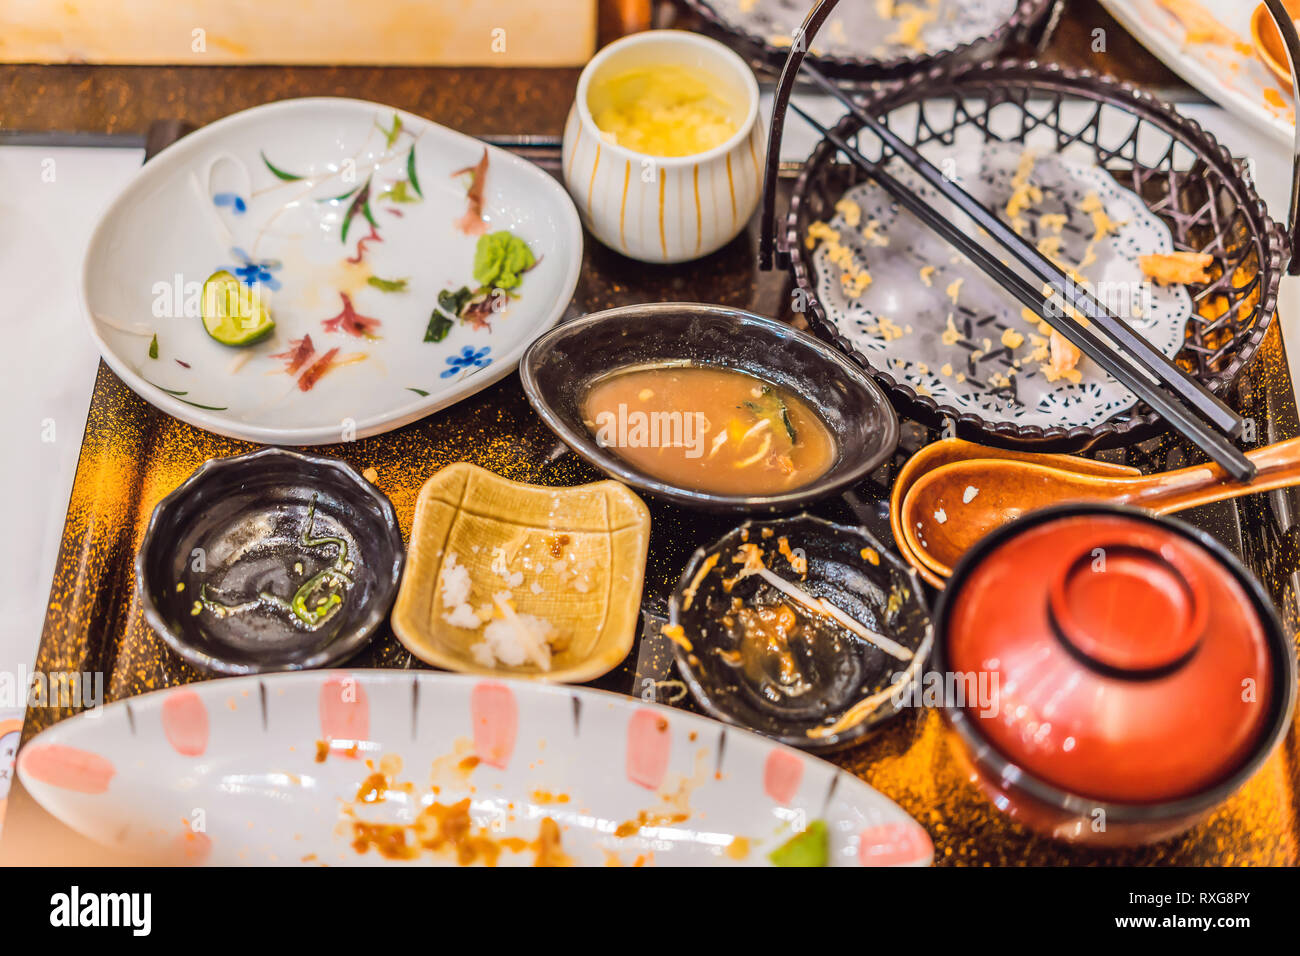 Image result for messy table restaurant